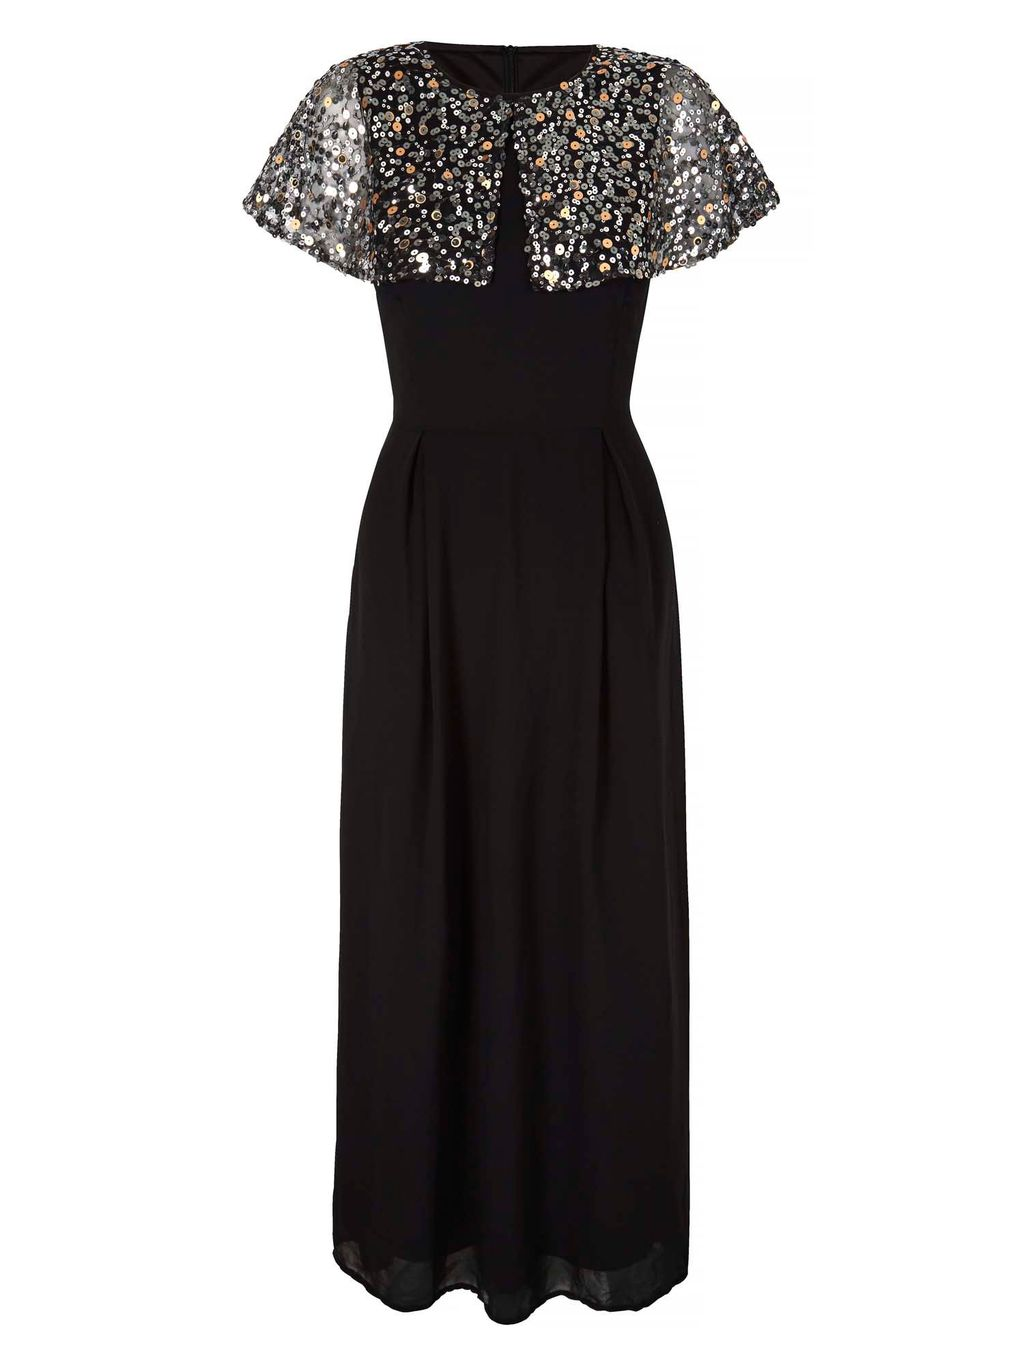 Sequin Cape Maxi Dress, Black - pattern: plain; style: maxi dress; length: ankle length; secondary colour: silver; predominant colour: black; fit: fitted at waist & bust; fibres: polyester/polyamide - 100%; occasions: occasion; sleeve style: cape sleeve; neckline: crew; sleeve length: short sleeve; texture group: sheer fabrics/chiffon/organza etc.; pattern type: fabric; embellishment: sequins; season: s/s 2016